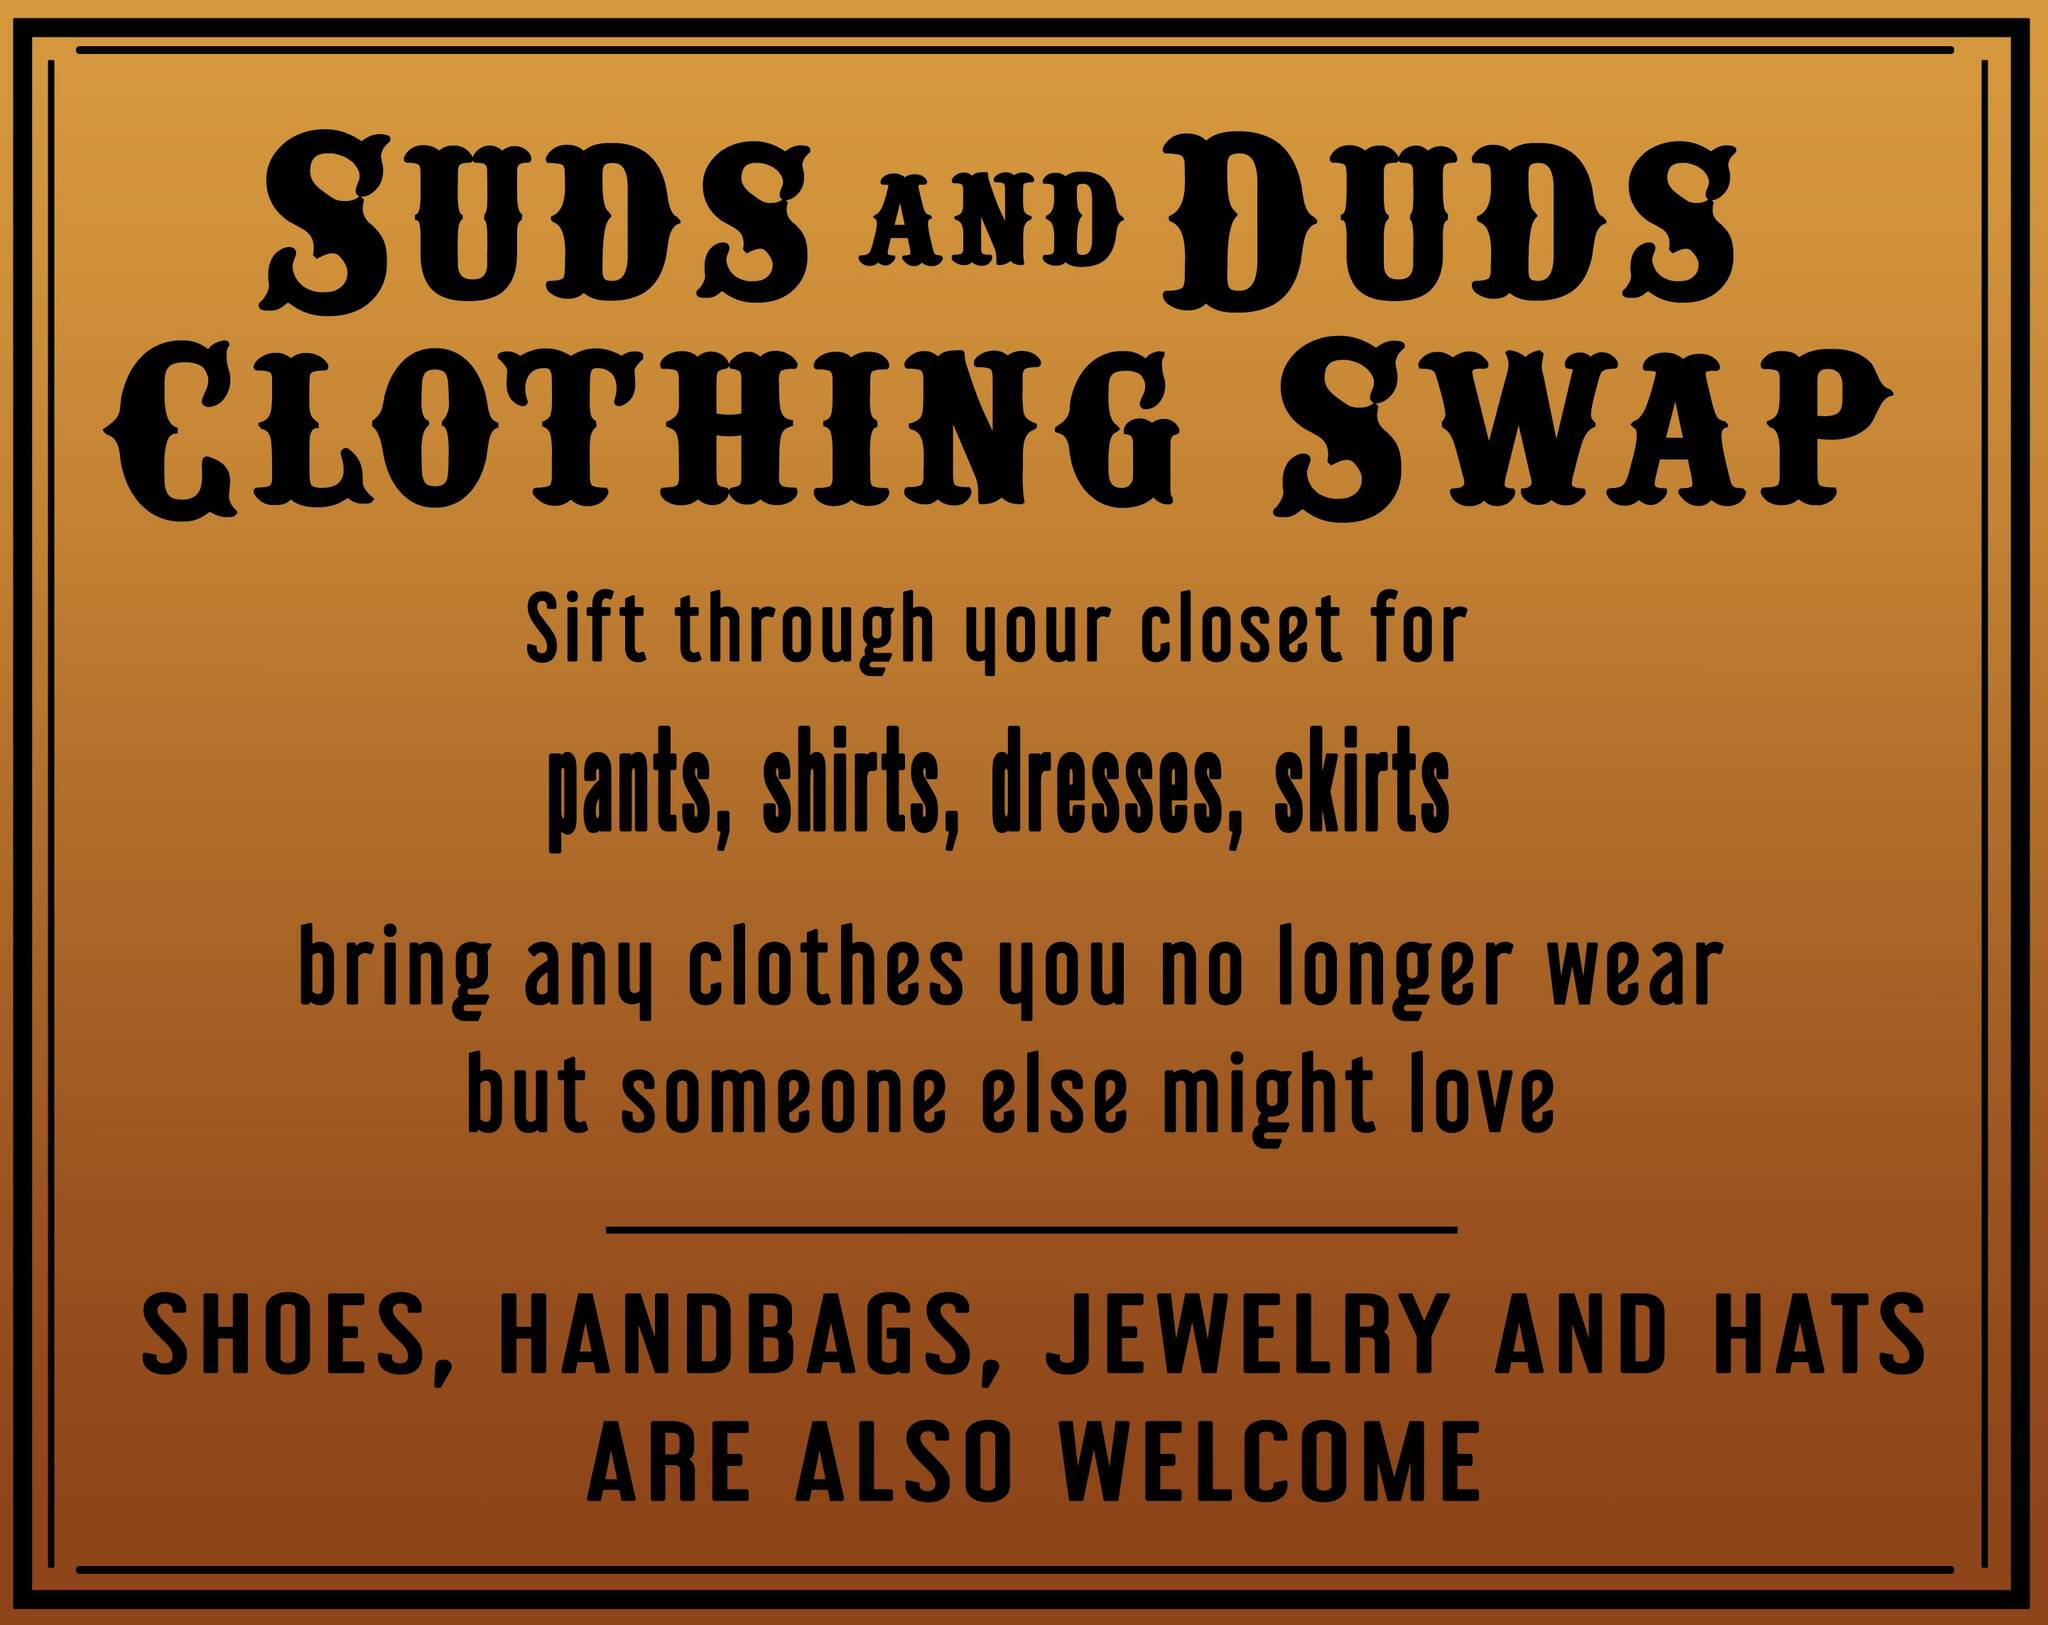 Suds and Duds - Women's Clothing Swap